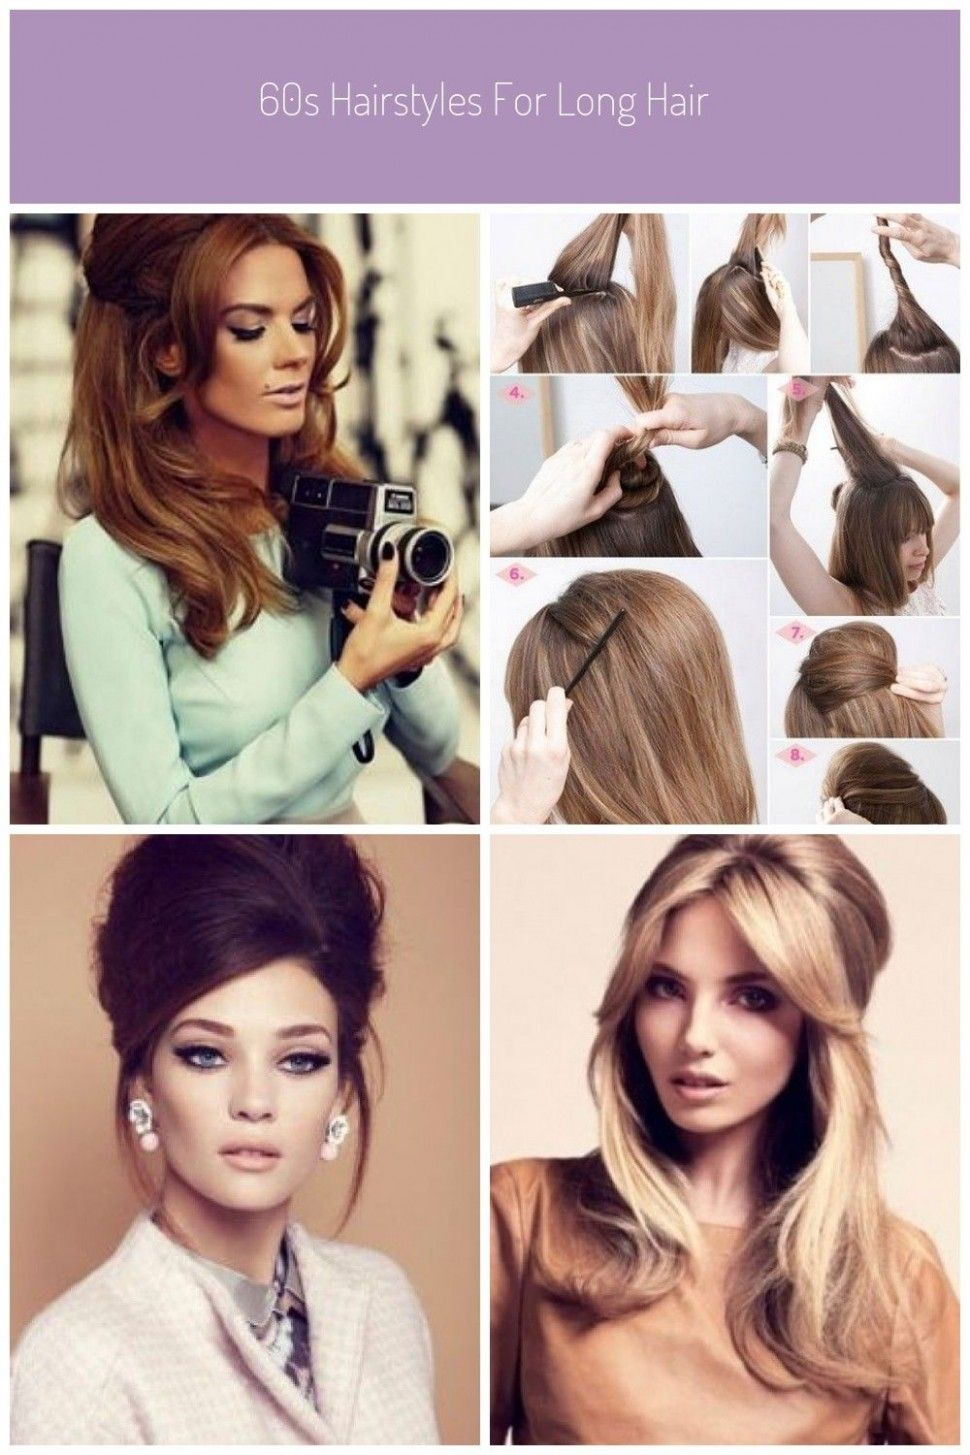 10 Awesome 1960s Hairstyles For Long Hair In 2021 Long Hair Styles Long Hair Wedding Styles Long Hair Images